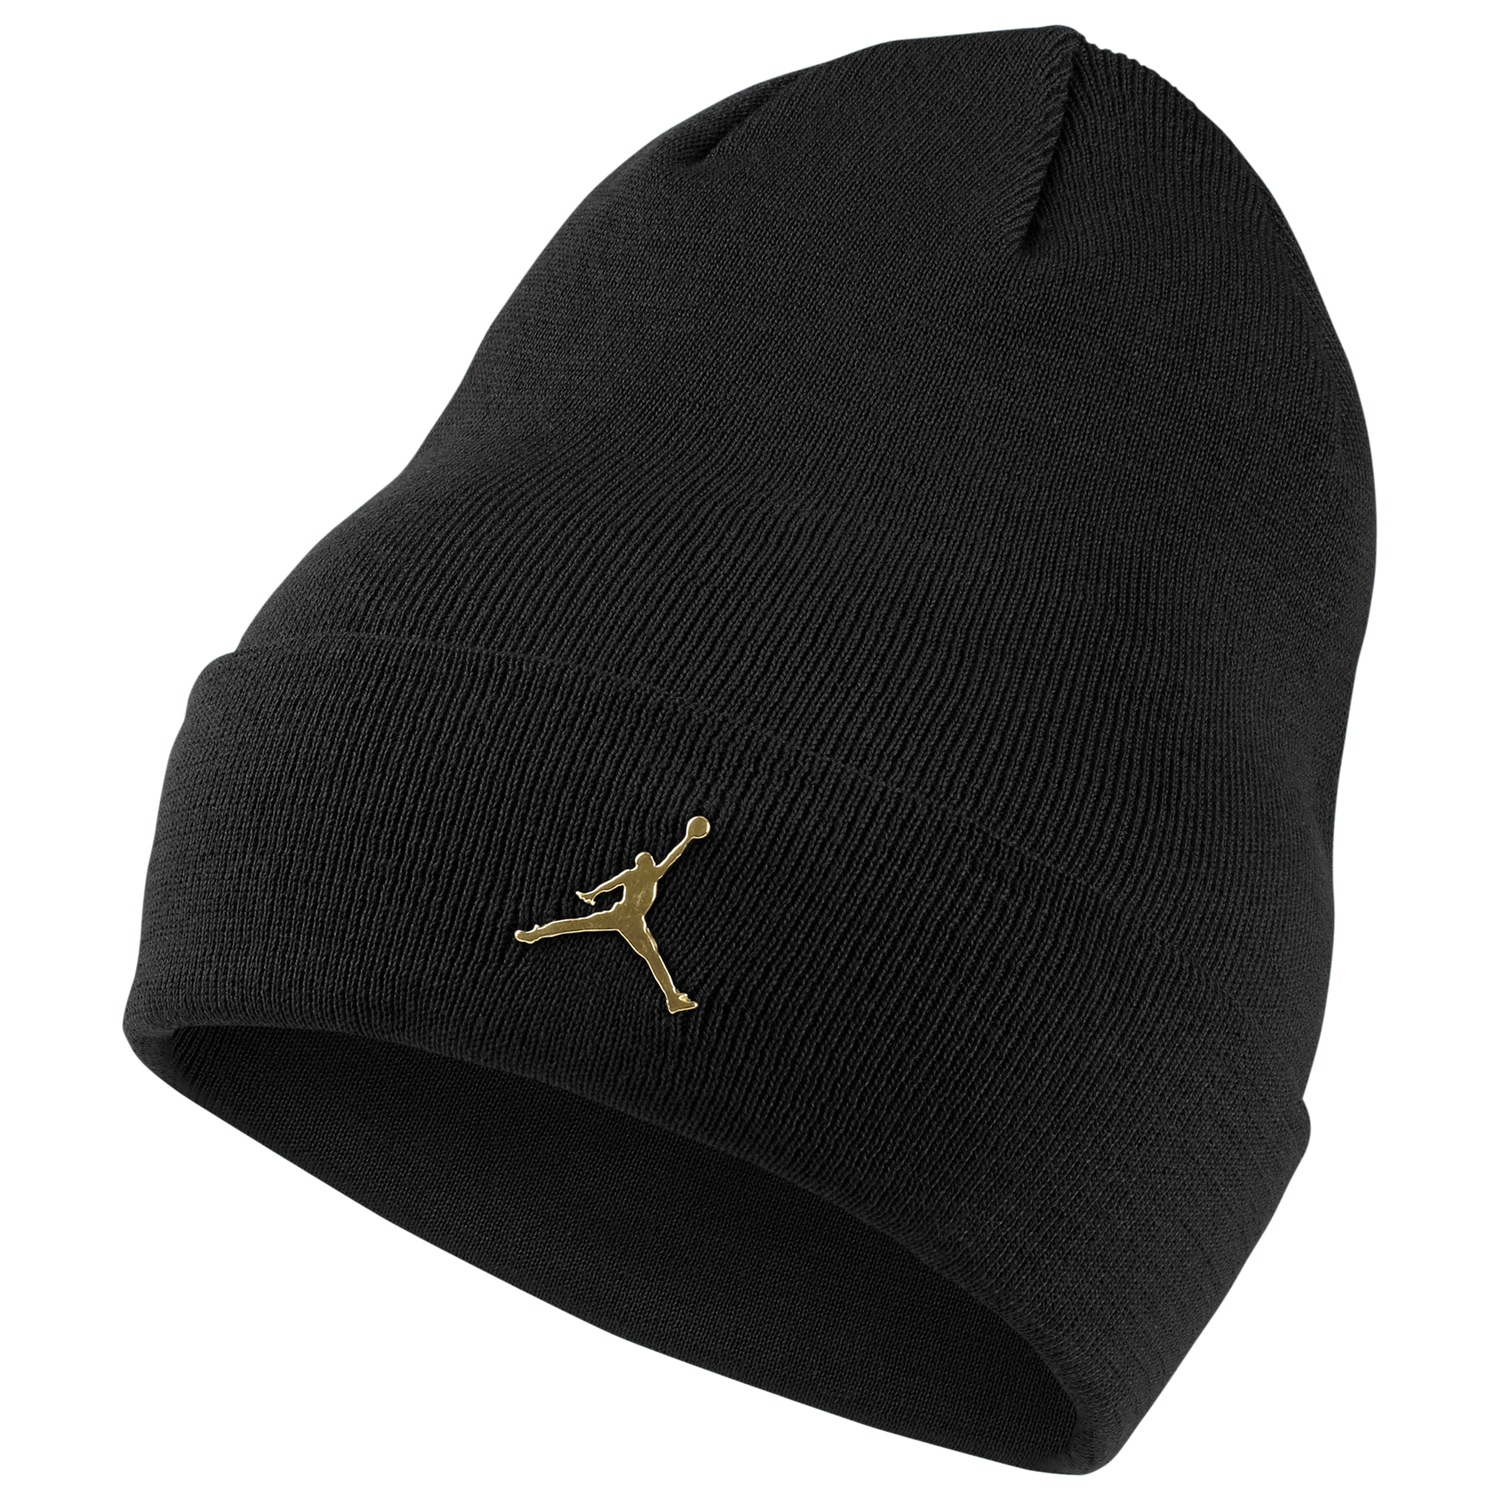 0c37d7e877d where can i buy jordan jumpman cuffed beanie 8a29d af458